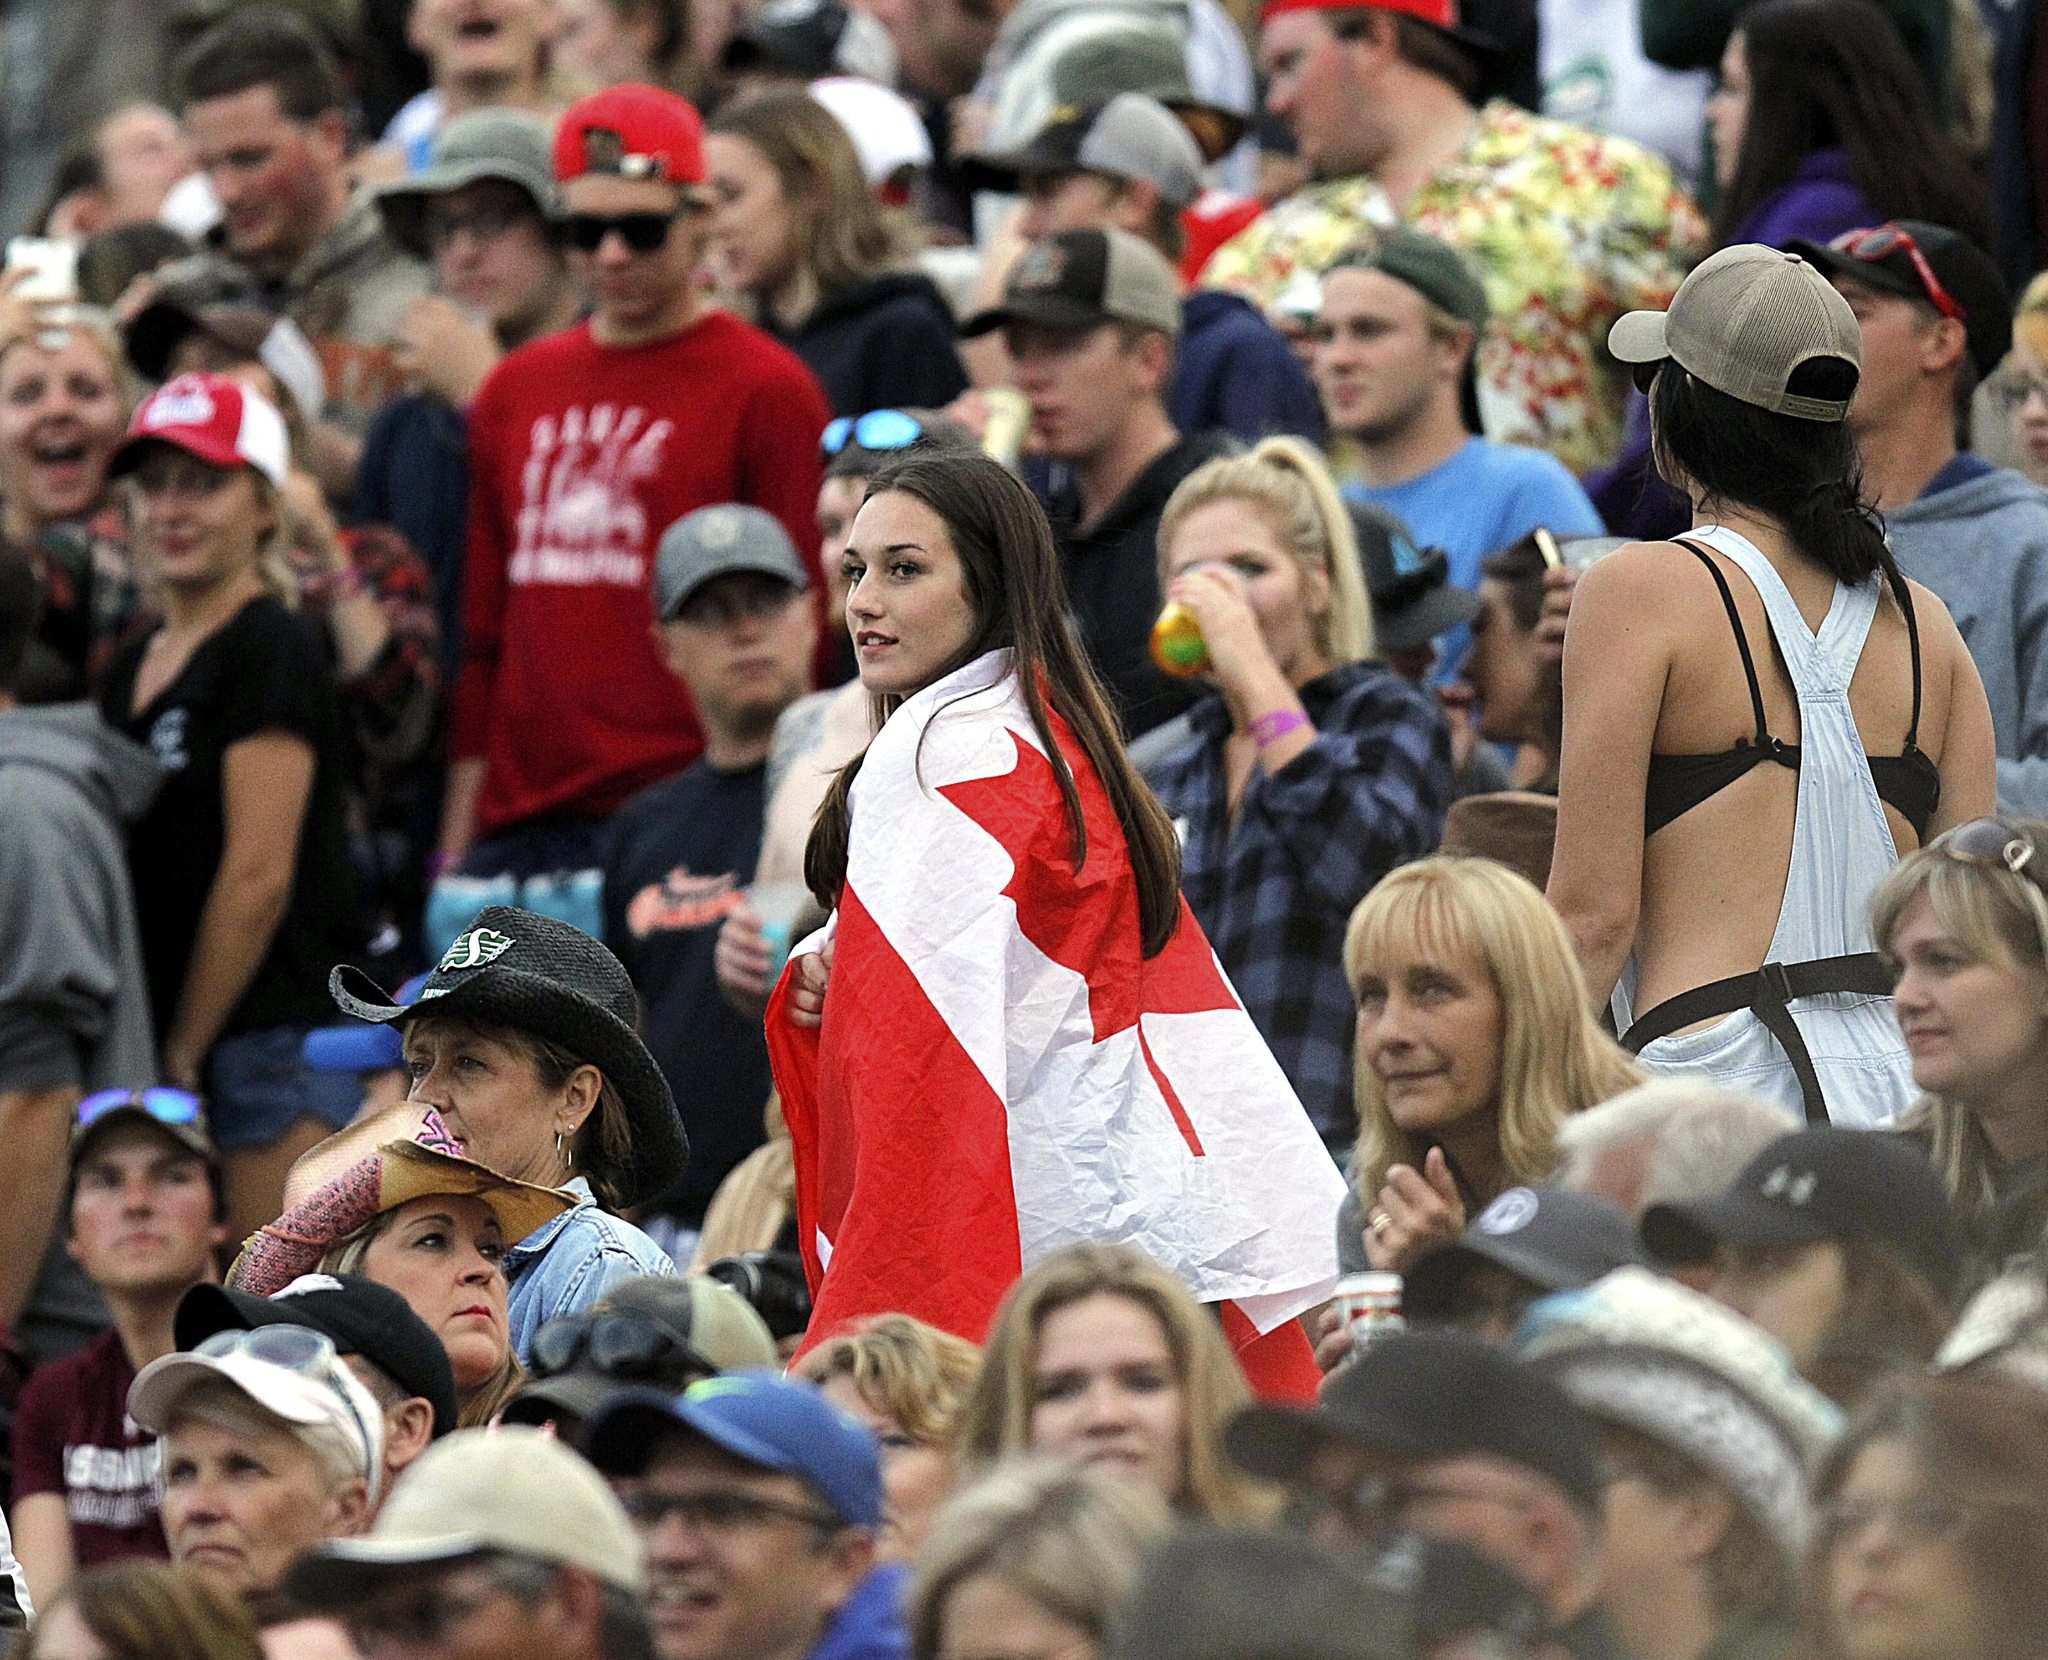 PHIL HOSSACK / WINNIPEG FREE PRESS</p><p>Dauphin&#39;s Countryfest at the Selo Ukraina amphitheatre was the place to be for music fans and flag-brandishers alike.</p>